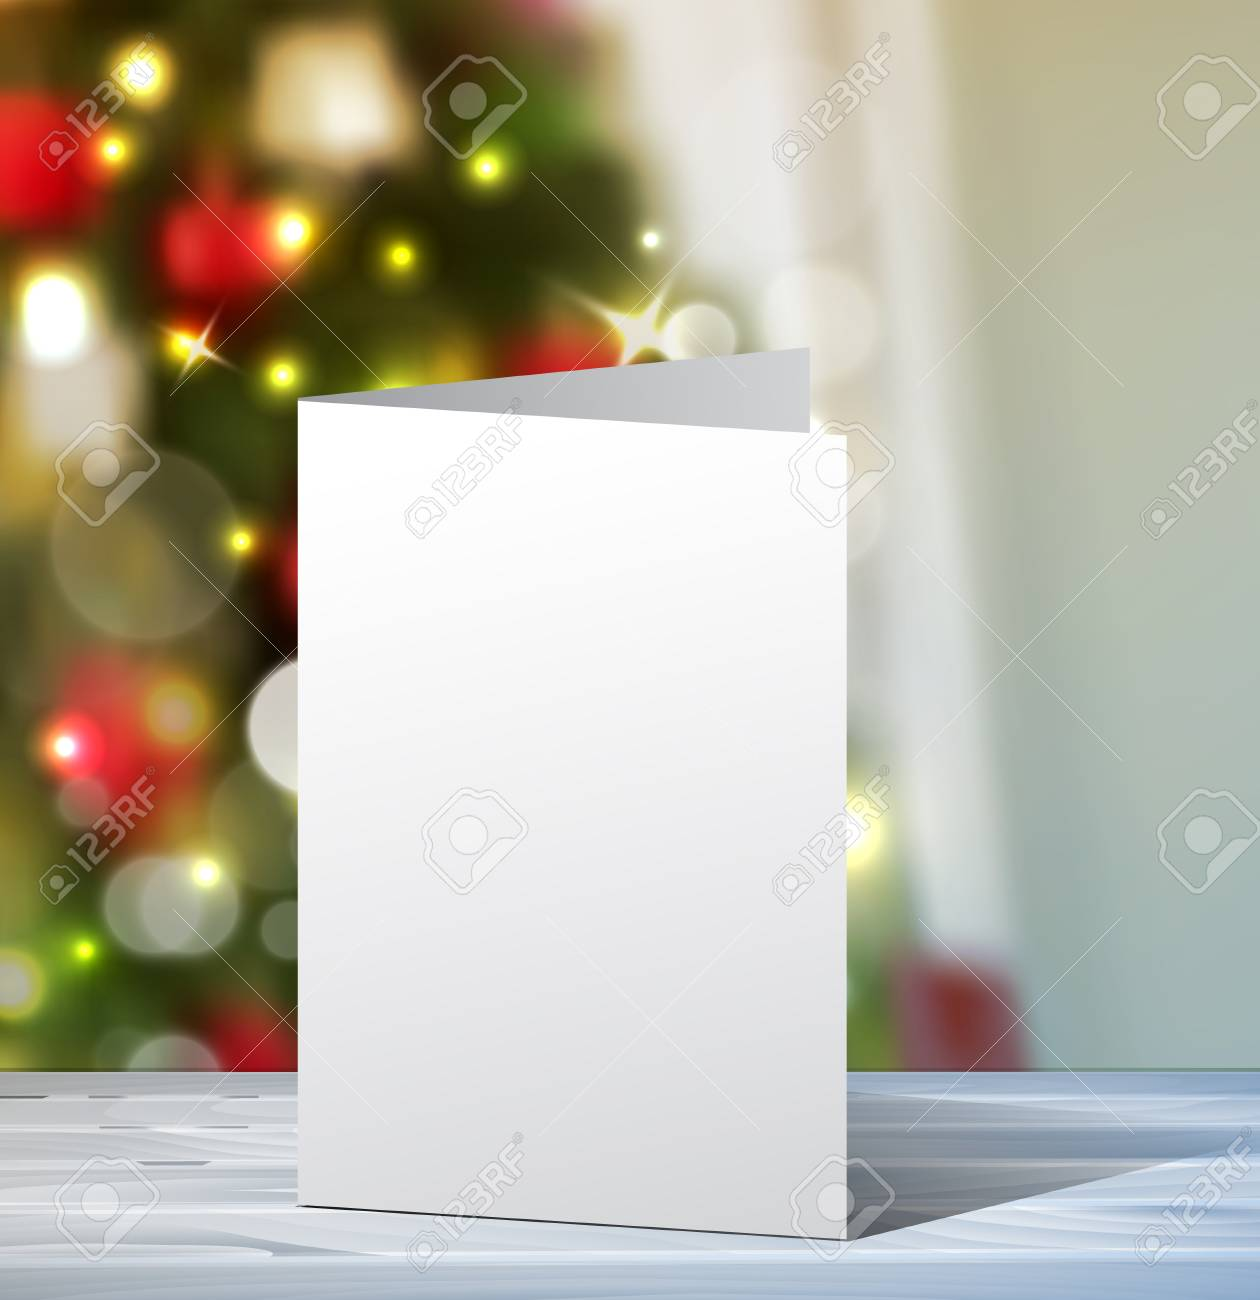 Christmas Greeting Card Mock Up Vertical Vector For Your Design Ideas On Blured Tree Background